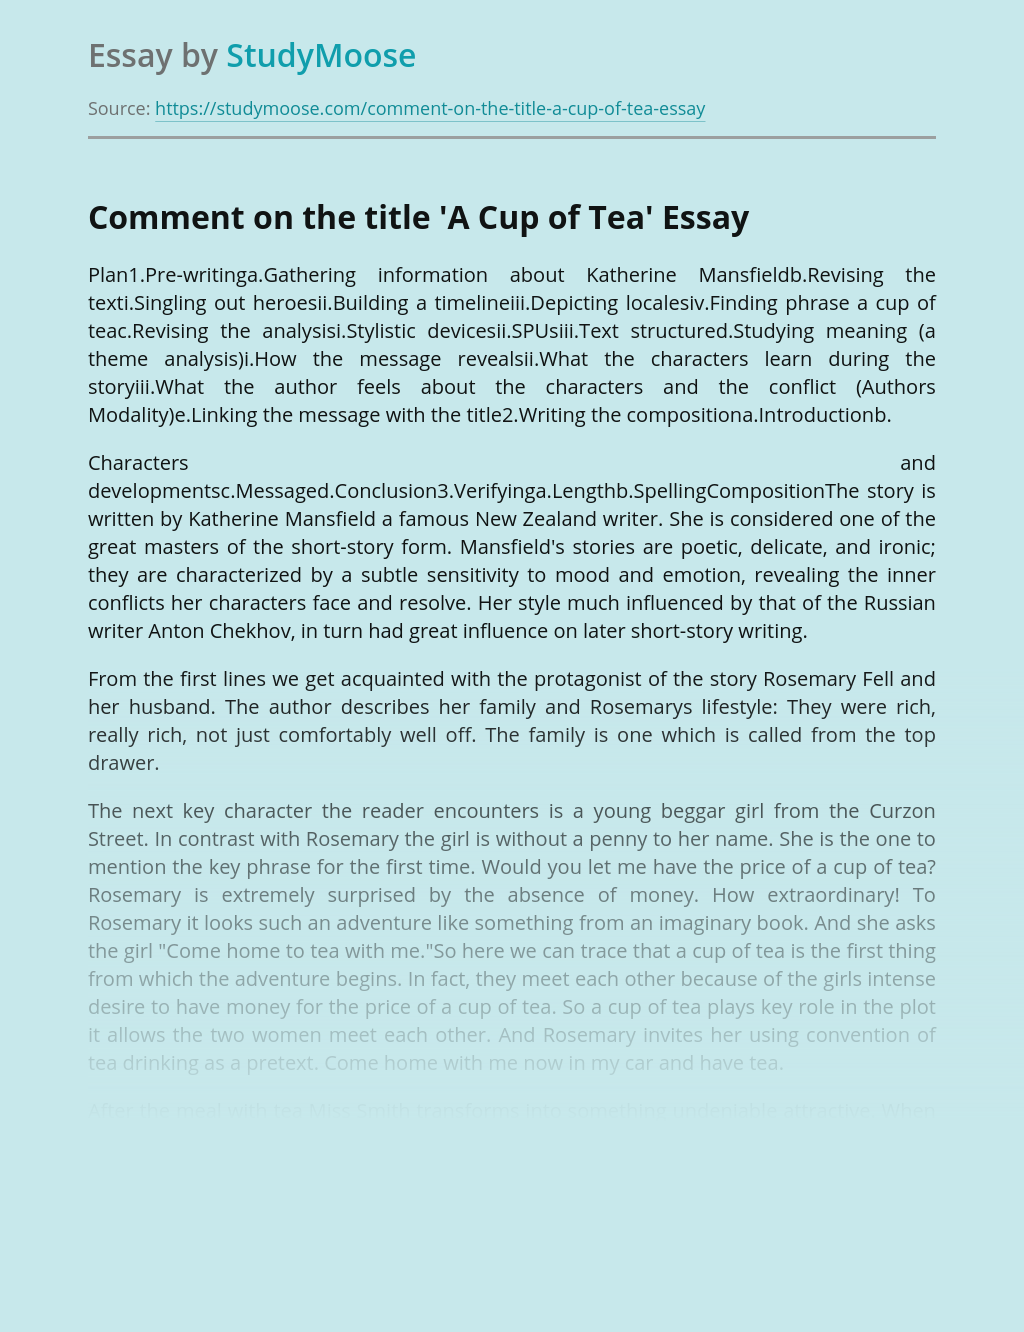 Comment on the title 'A Cup of Tea'